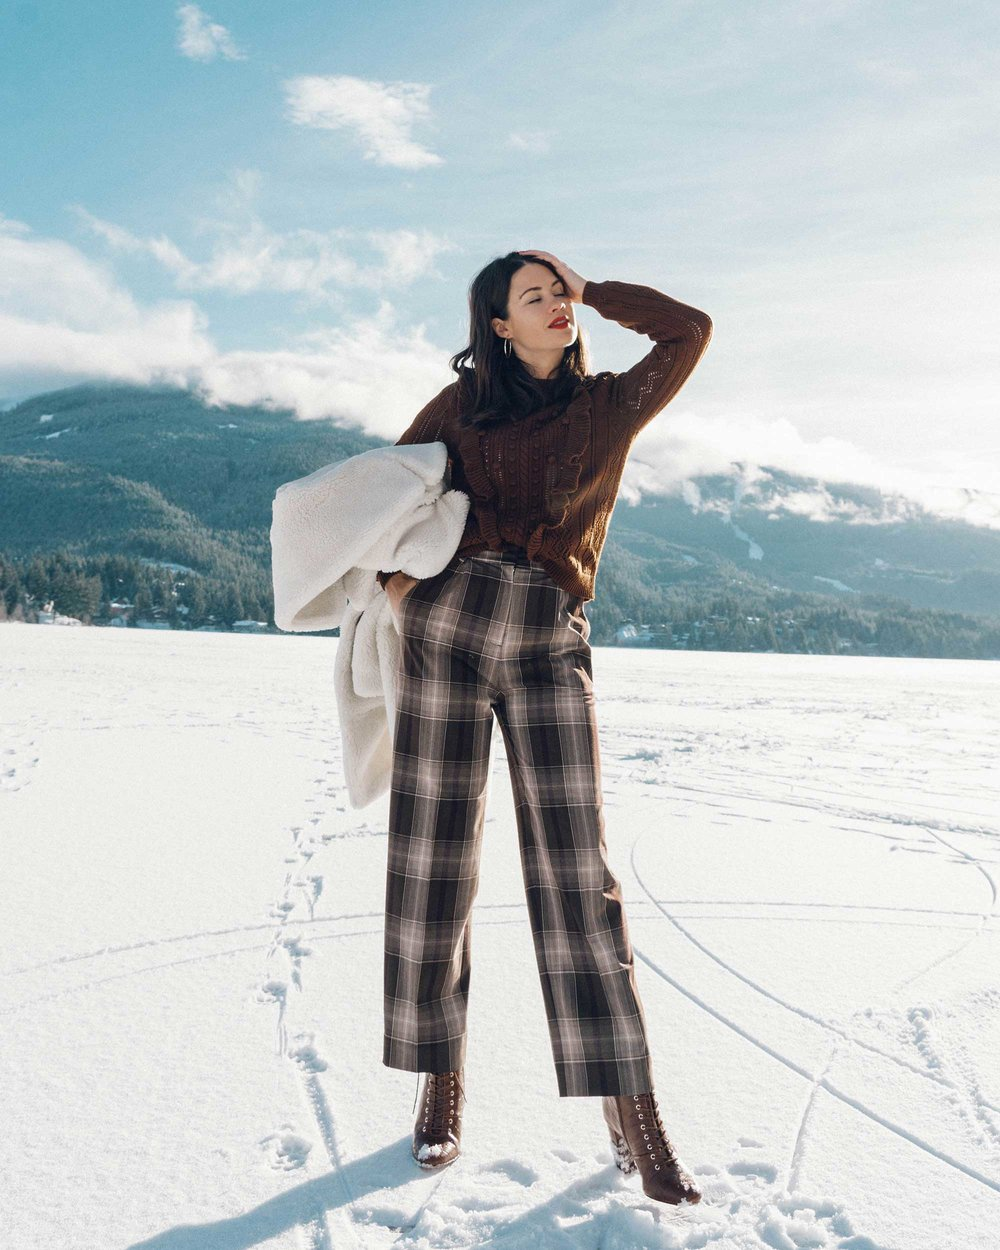 & Other Stories Tailored Brown Plaid Pants with pleats, white Faux Shearling Coat,  winter snow outfit, whistler canada11.jpg